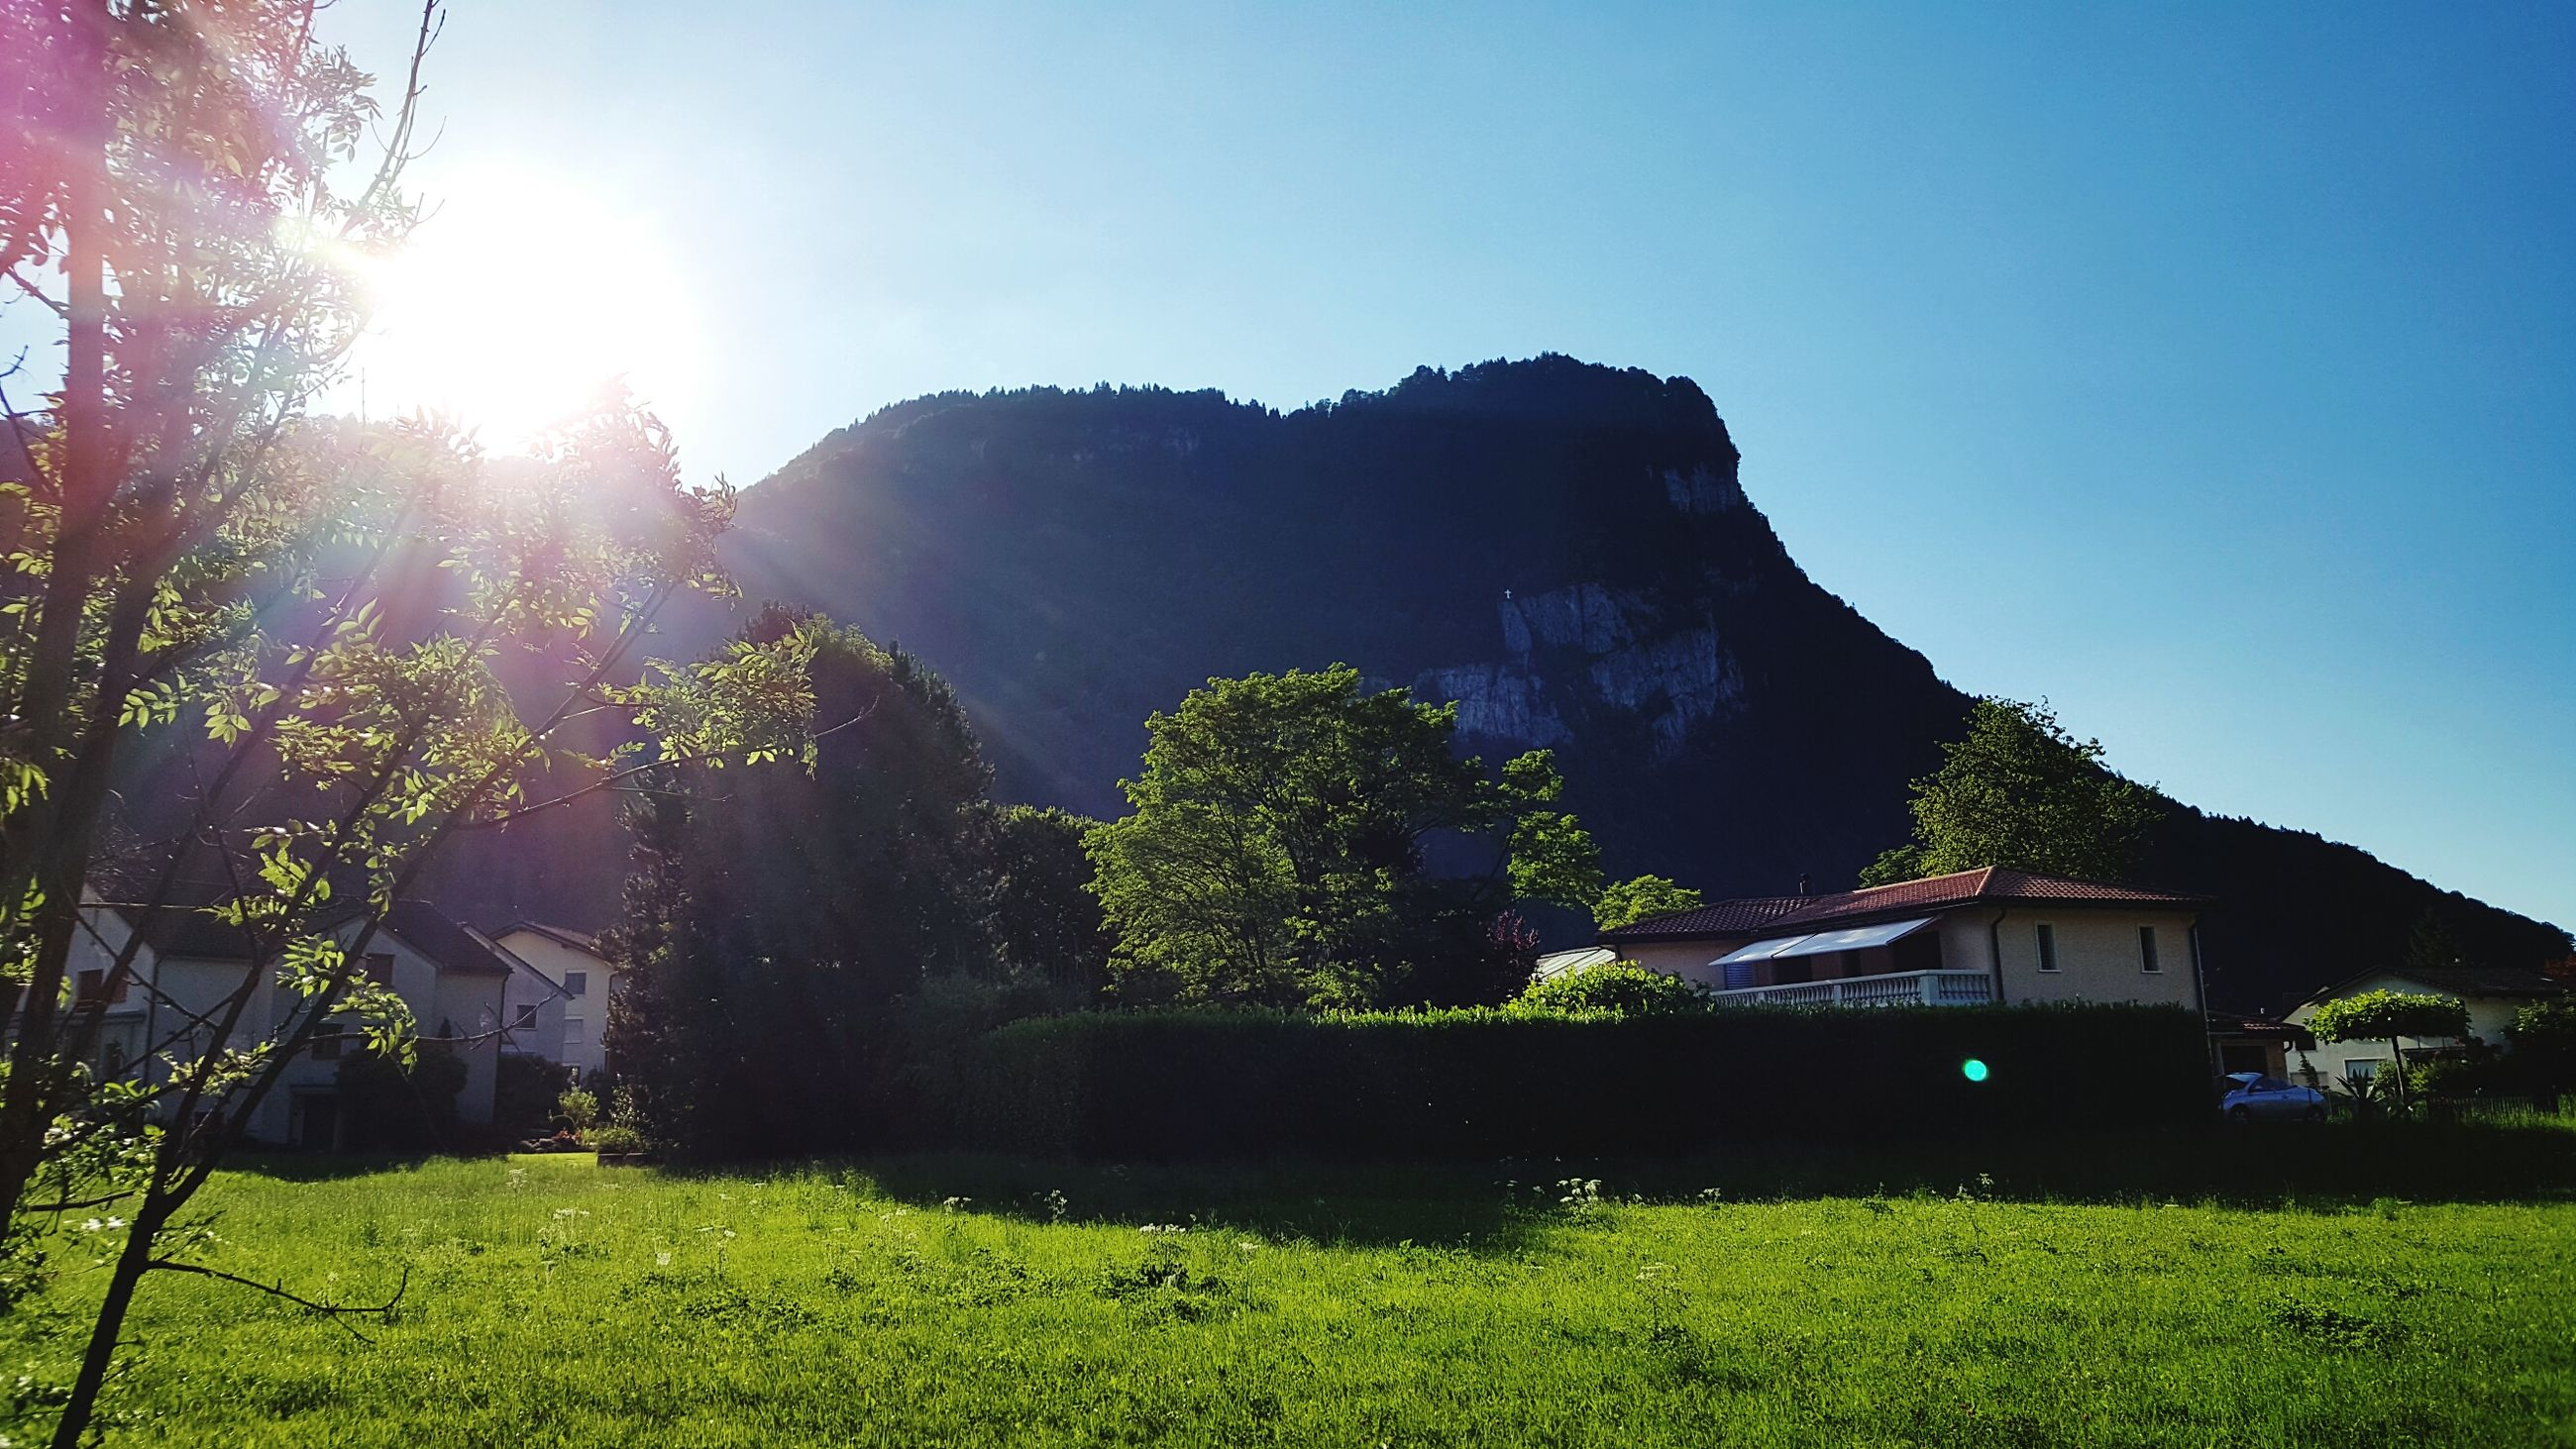 sun, clear sky, sunlight, grass, lens flare, sunbeam, tree, mountain, built structure, tranquility, tranquil scene, nature, beauty in nature, blue, landscape, building exterior, architecture, scenics, sunny, growth